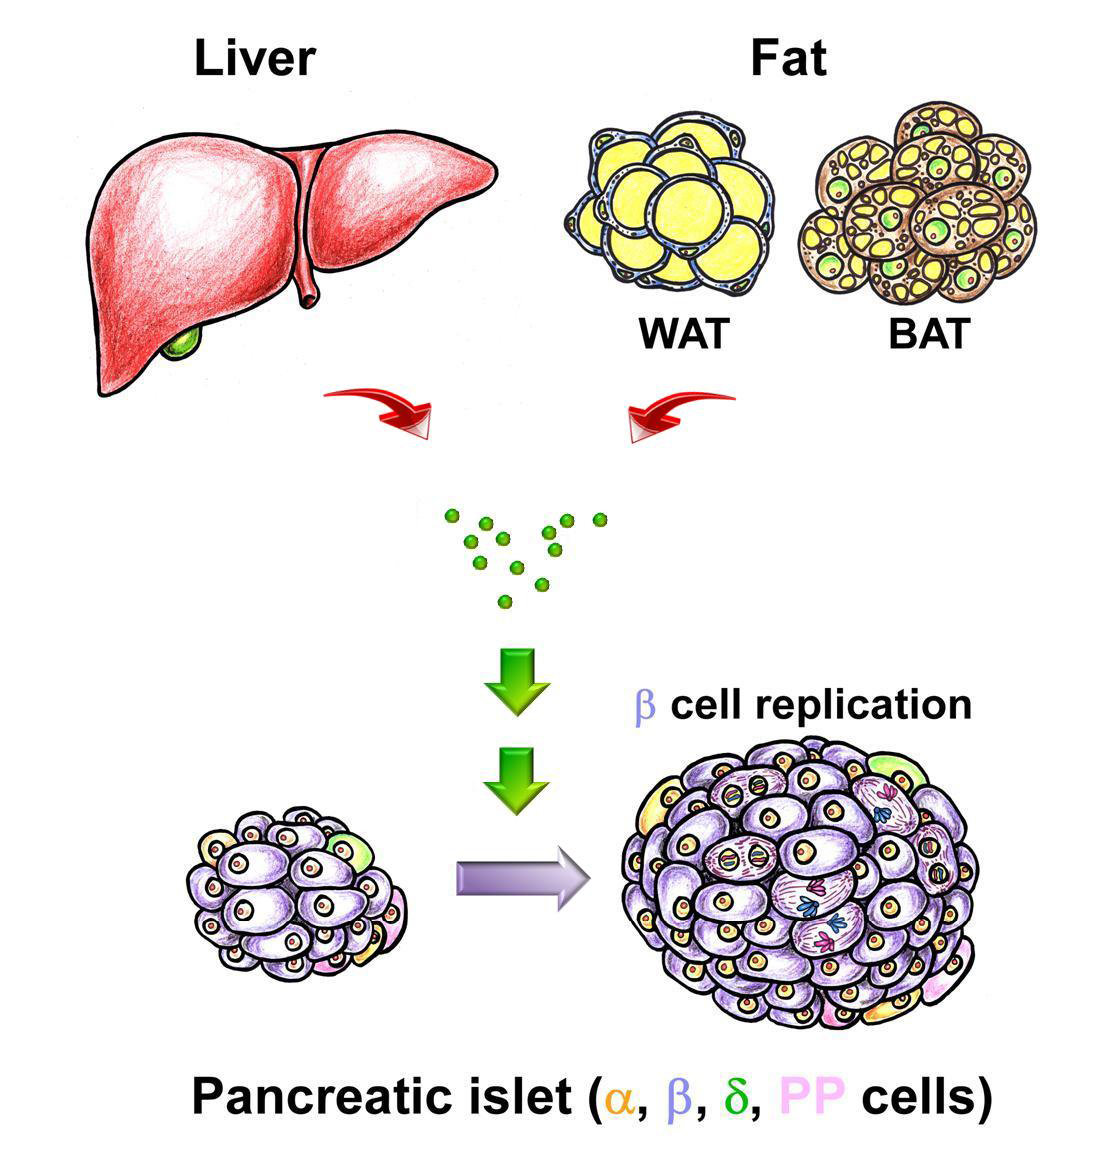 The mechanism of pancreatic beta cell replication